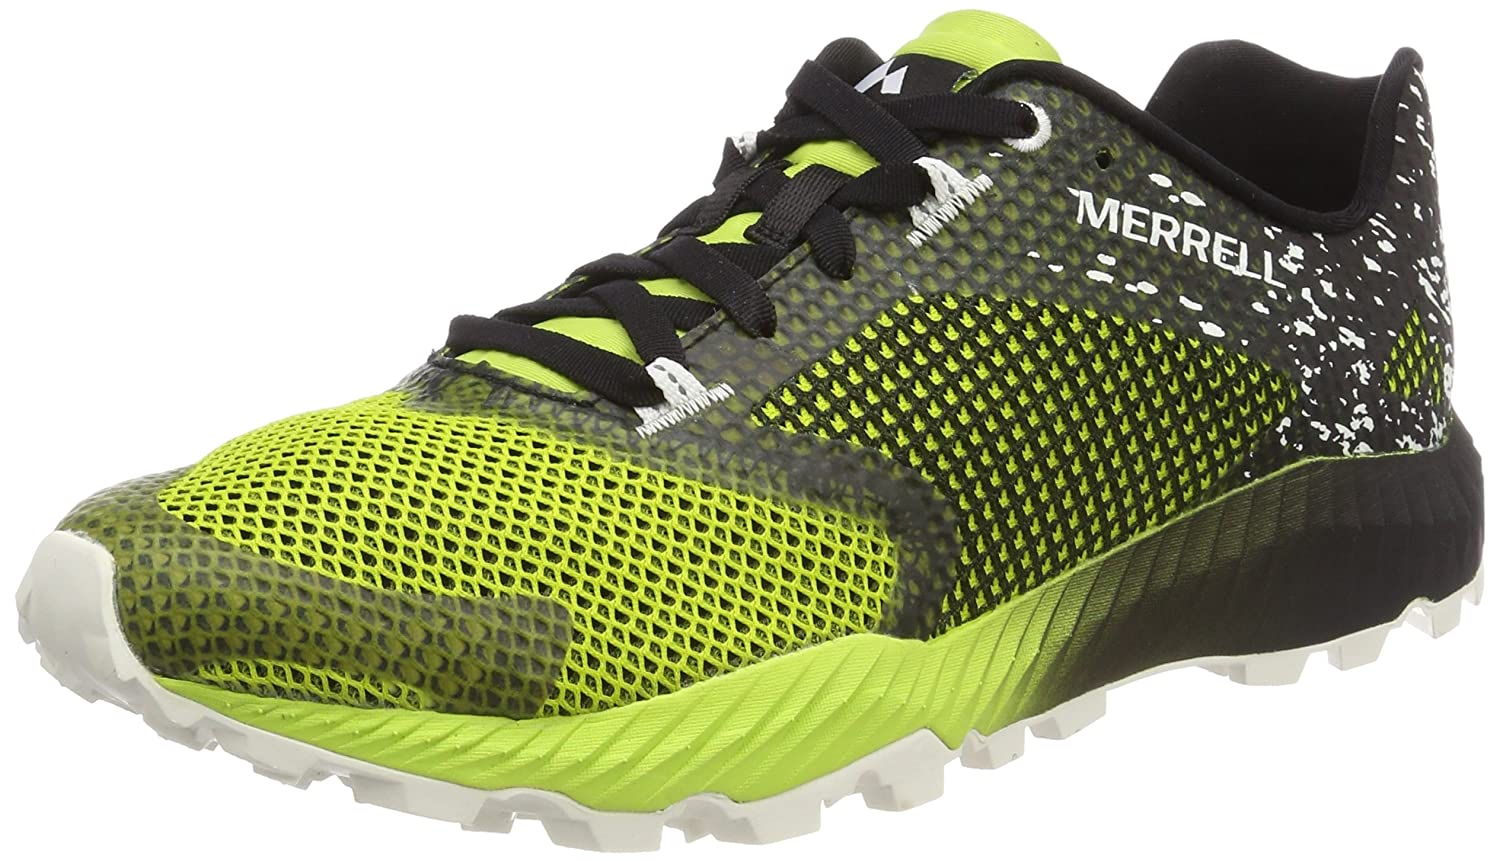 Noir (noir Speed vert) Merrell All Out Crush 2, Chaussures de Trail Homme